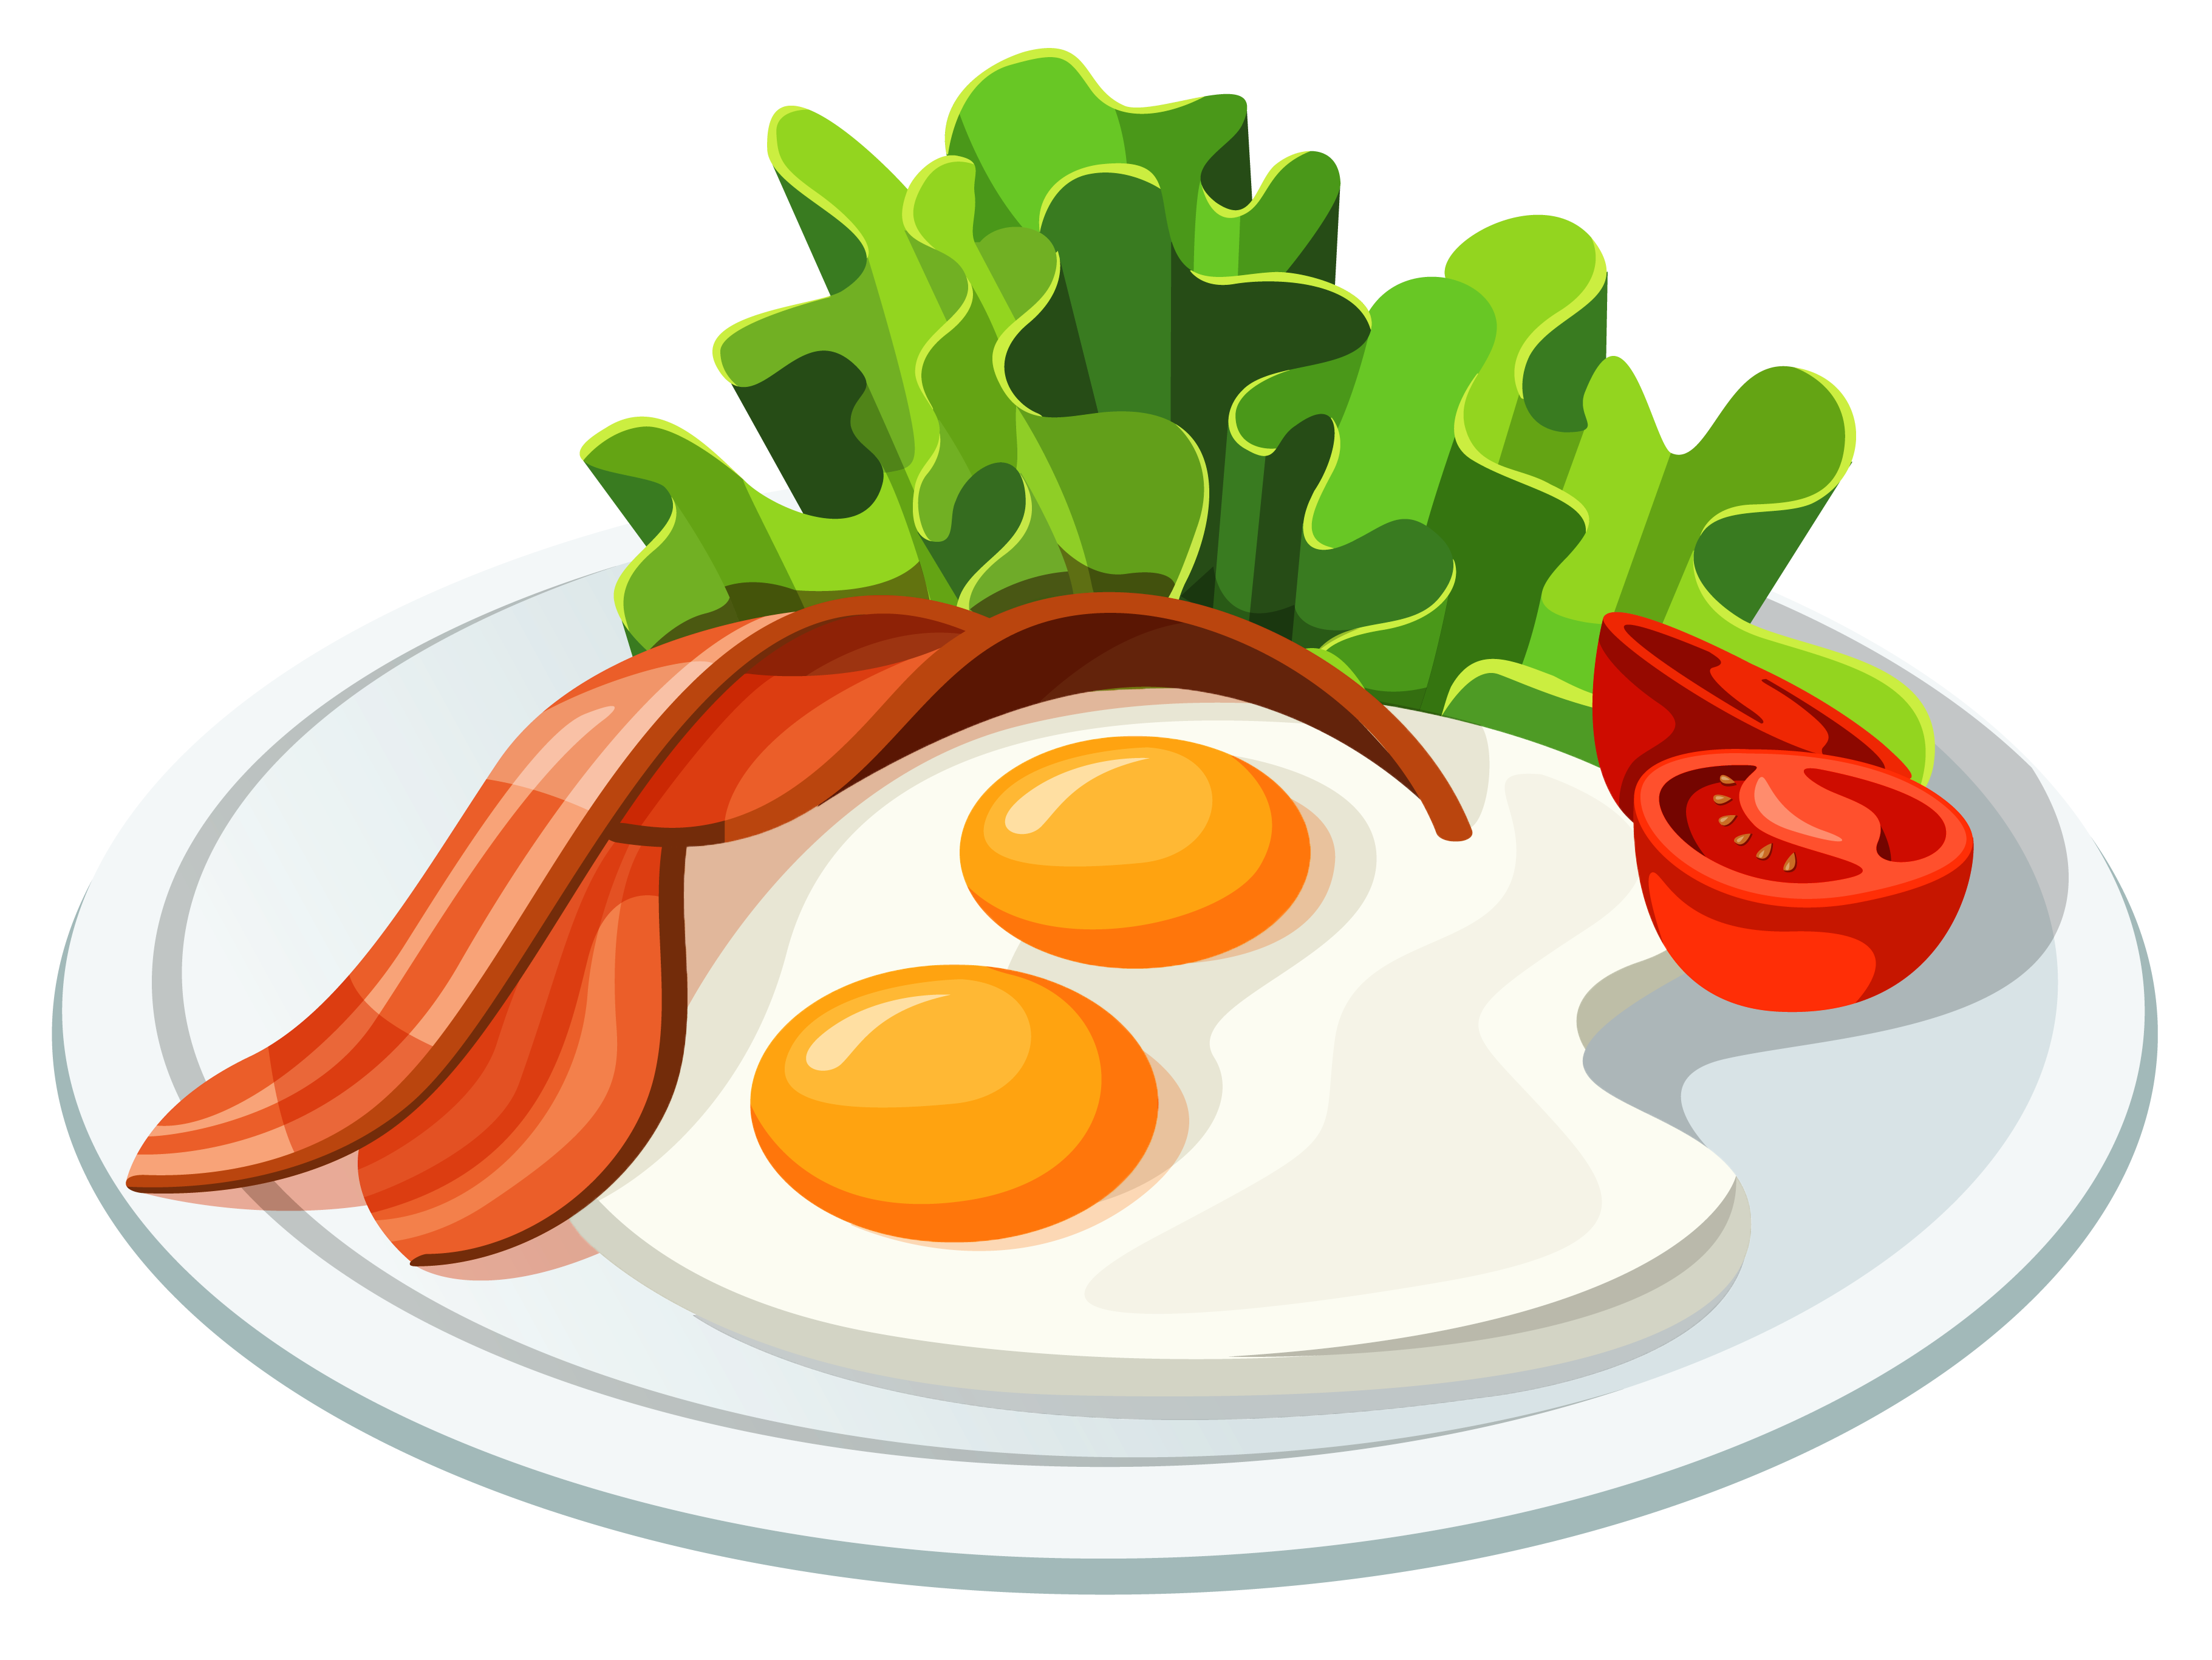 Breakfast Food Png Free - Food Egg Tomato PNG #72745 - PNG Images - PNGio